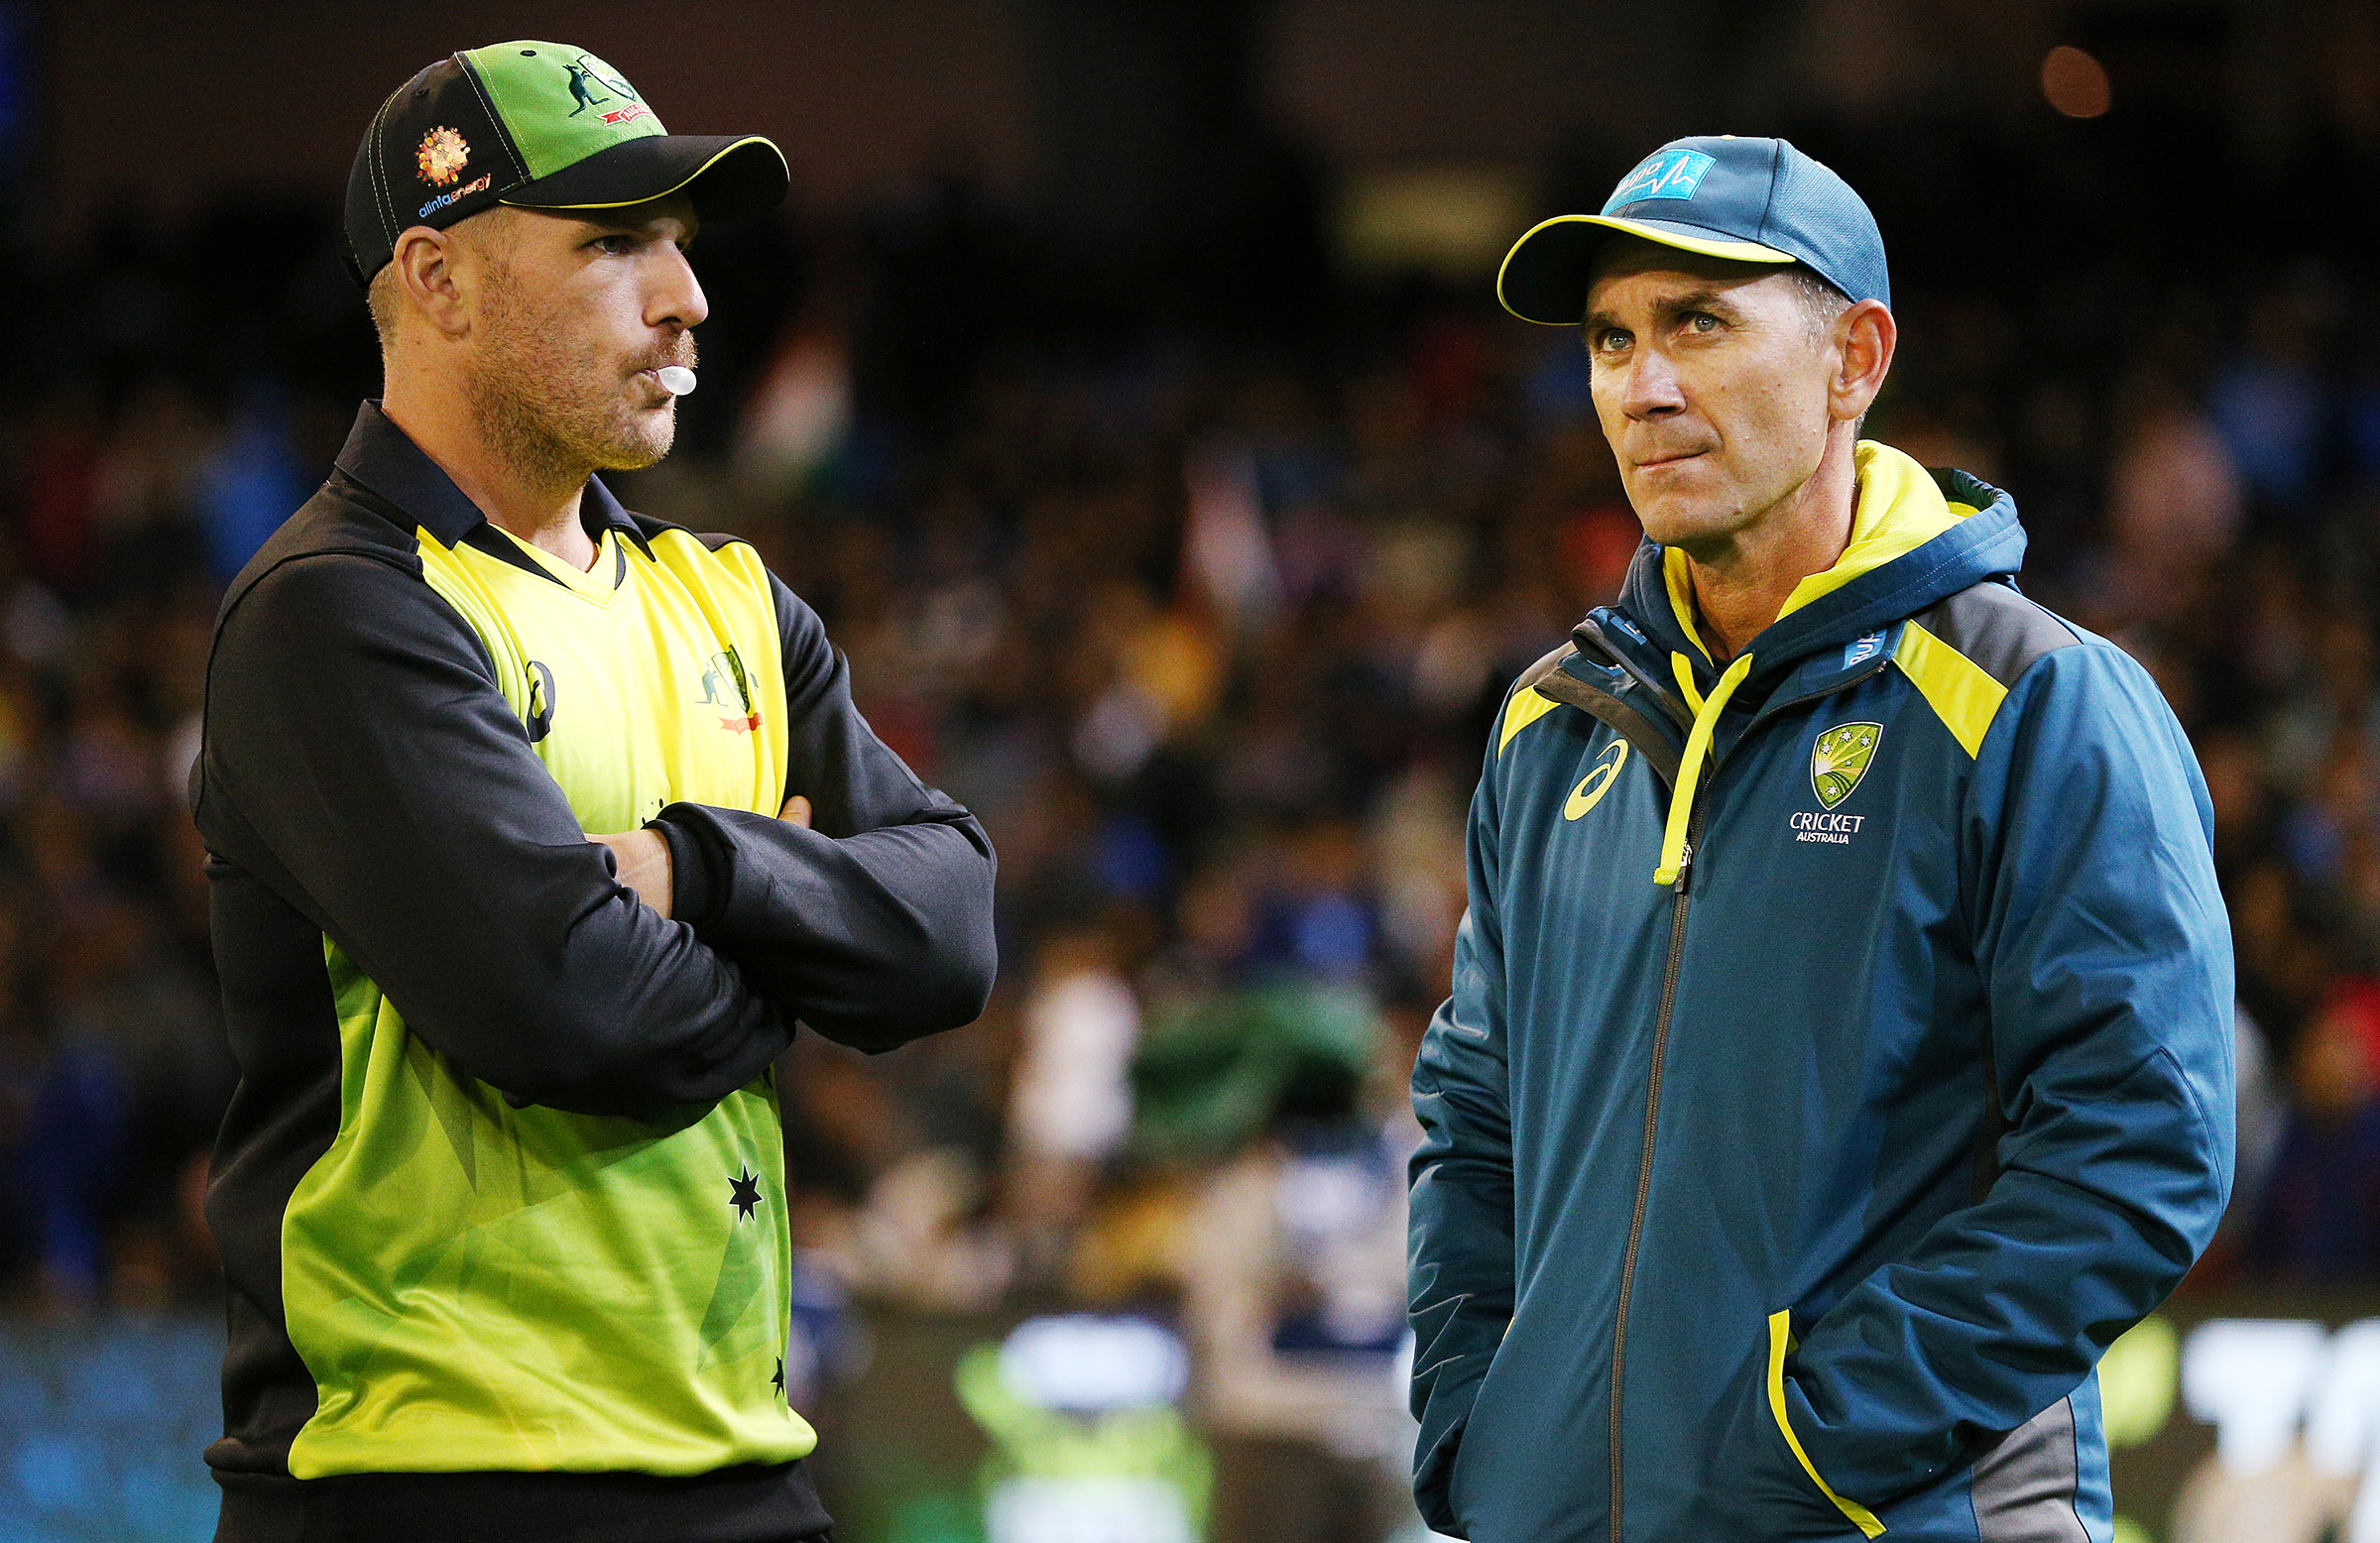 Langer has been delighted to see Finch emerge from last summer's lean patch // Getty